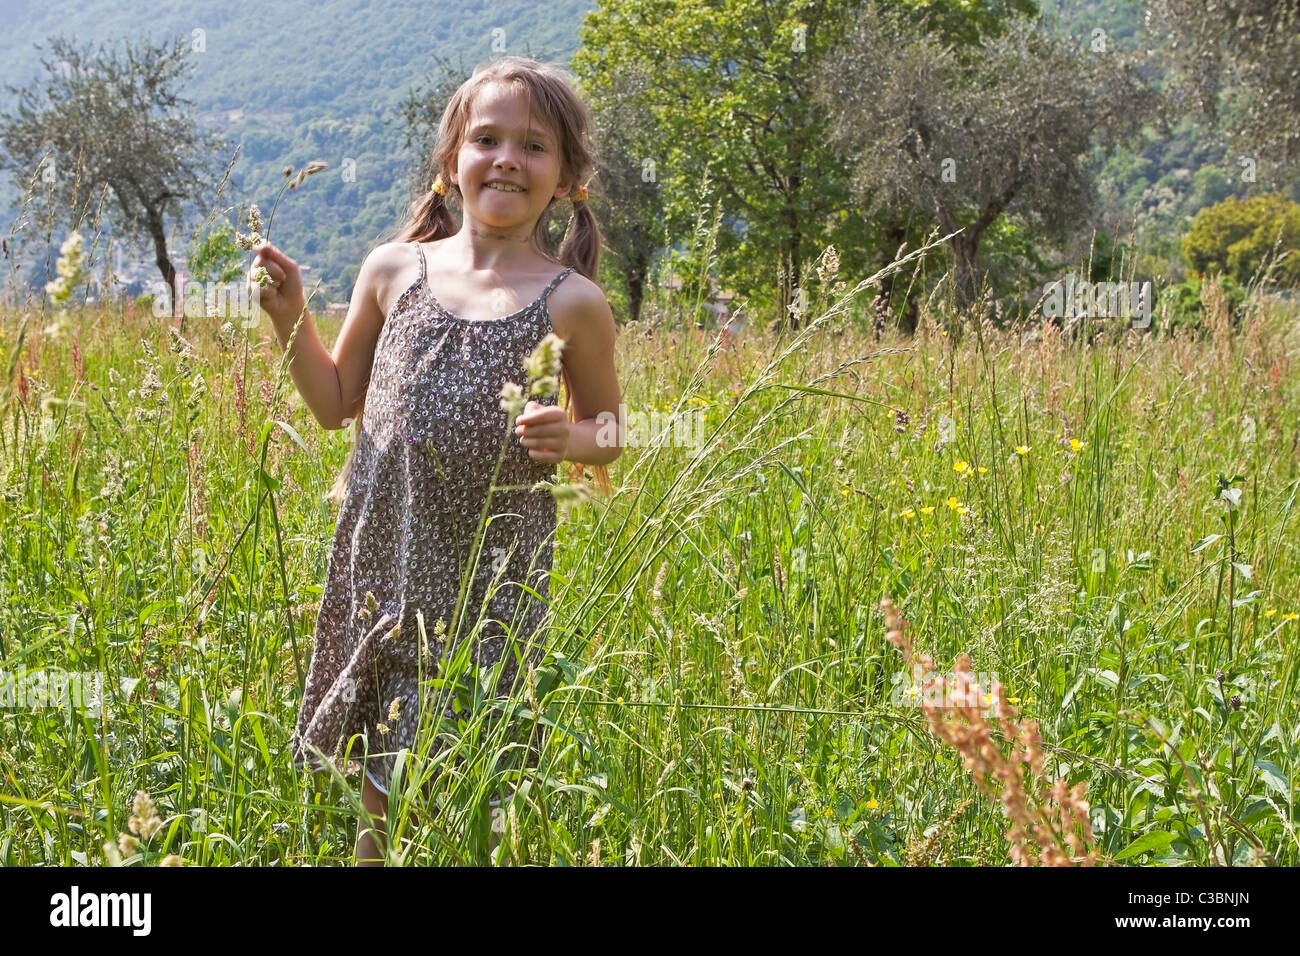 girl on a meadow in spring - Stock Image